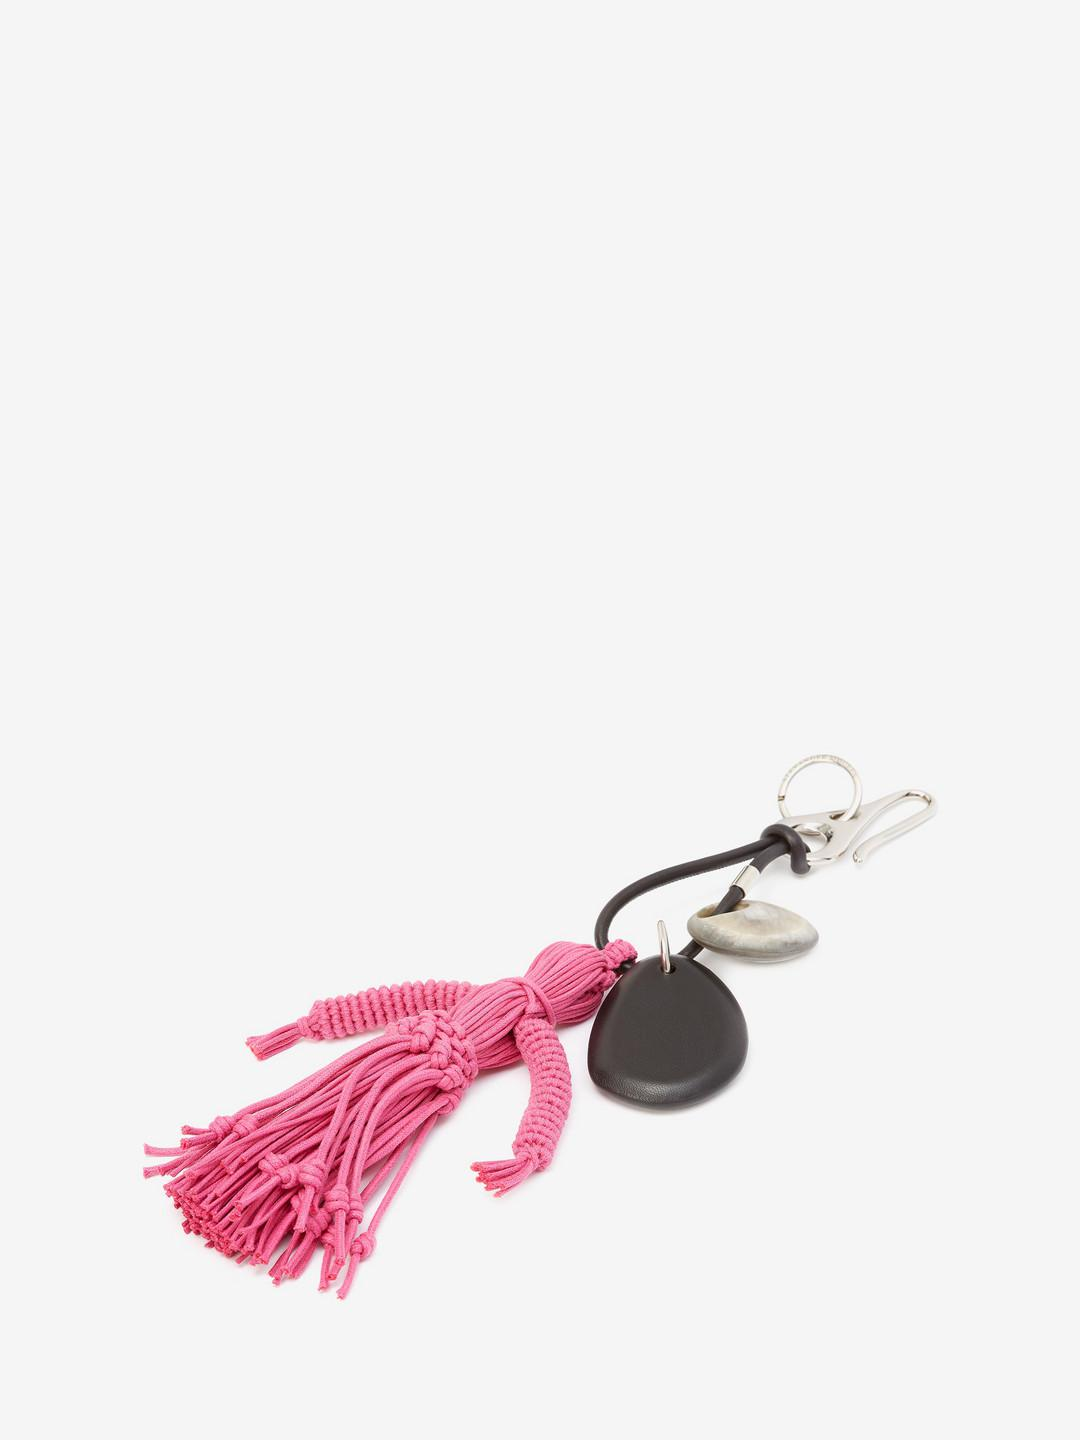 Alexander McQueen Leather Corn Dolly Bag Charm